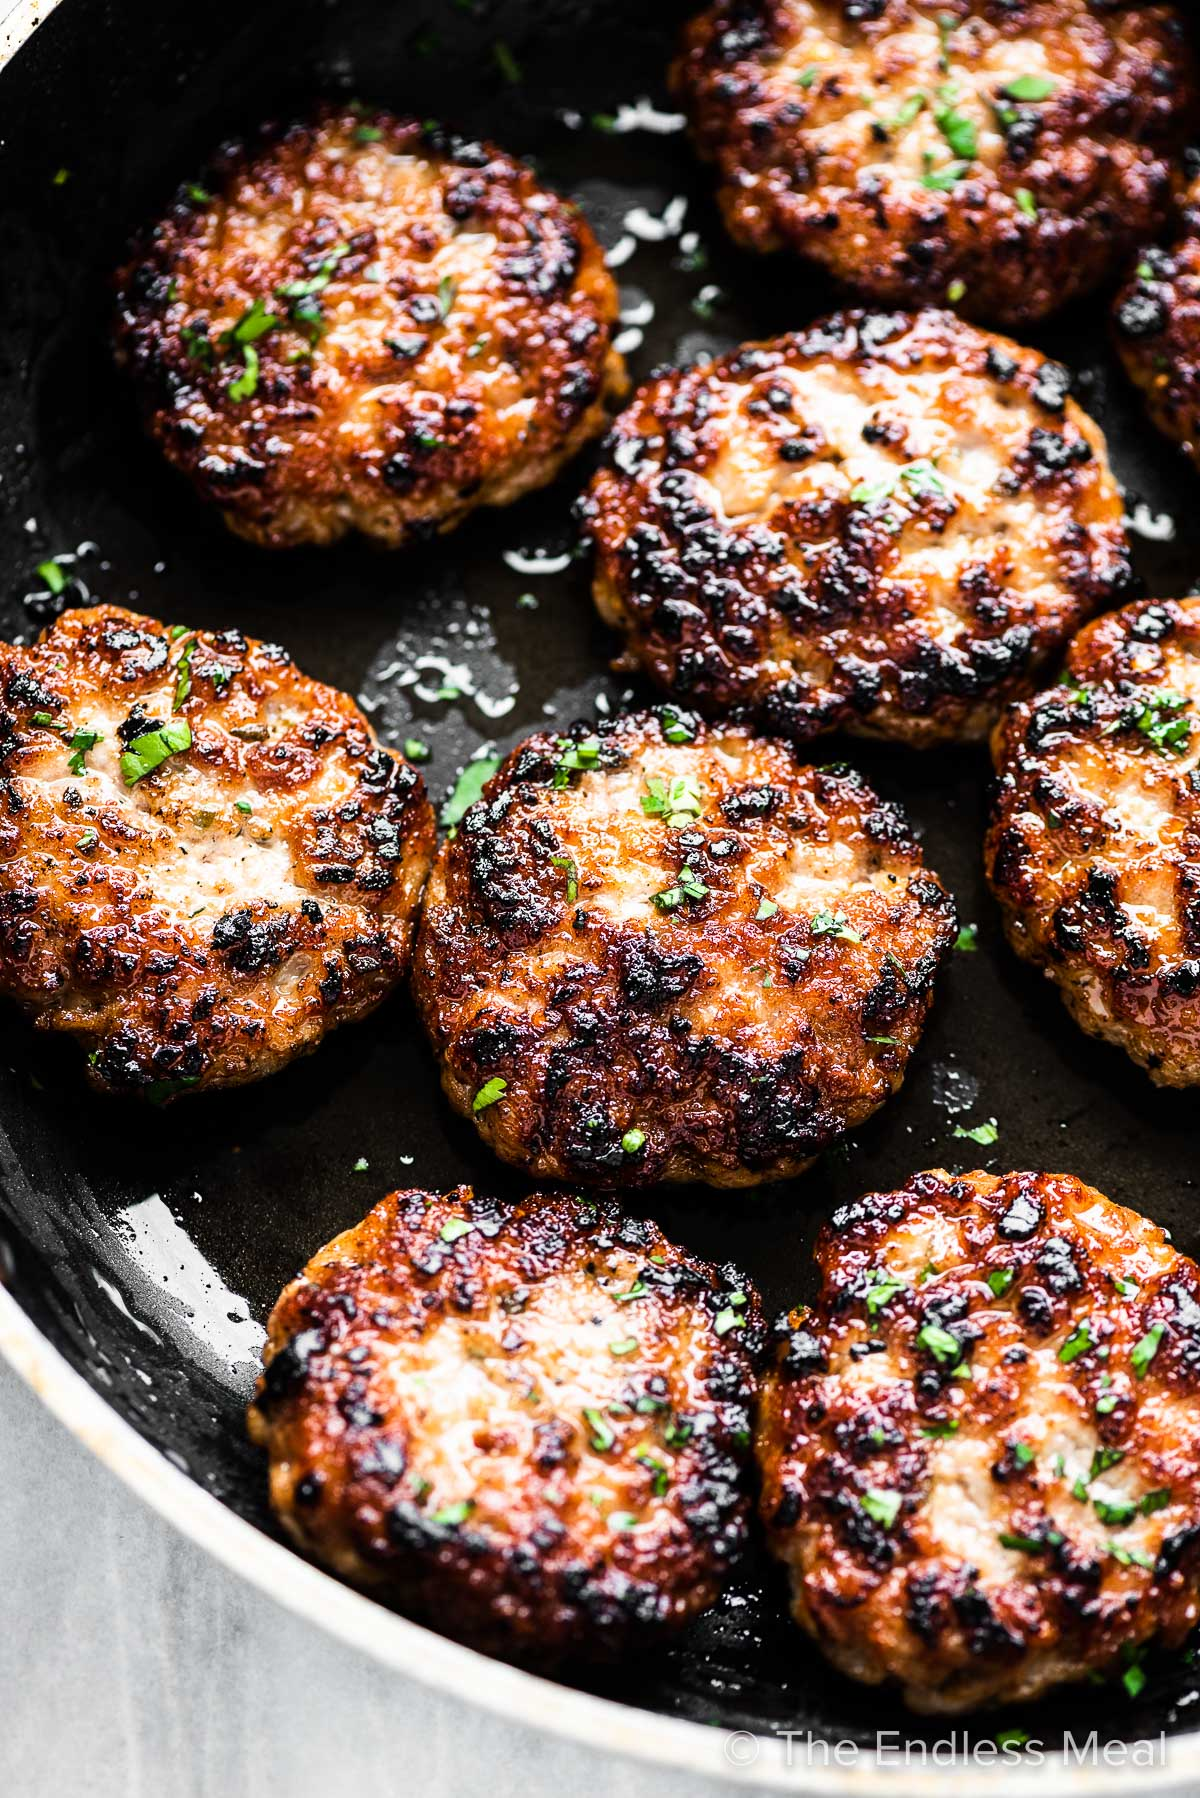 Homemade breakfast sausage patties in a pan.